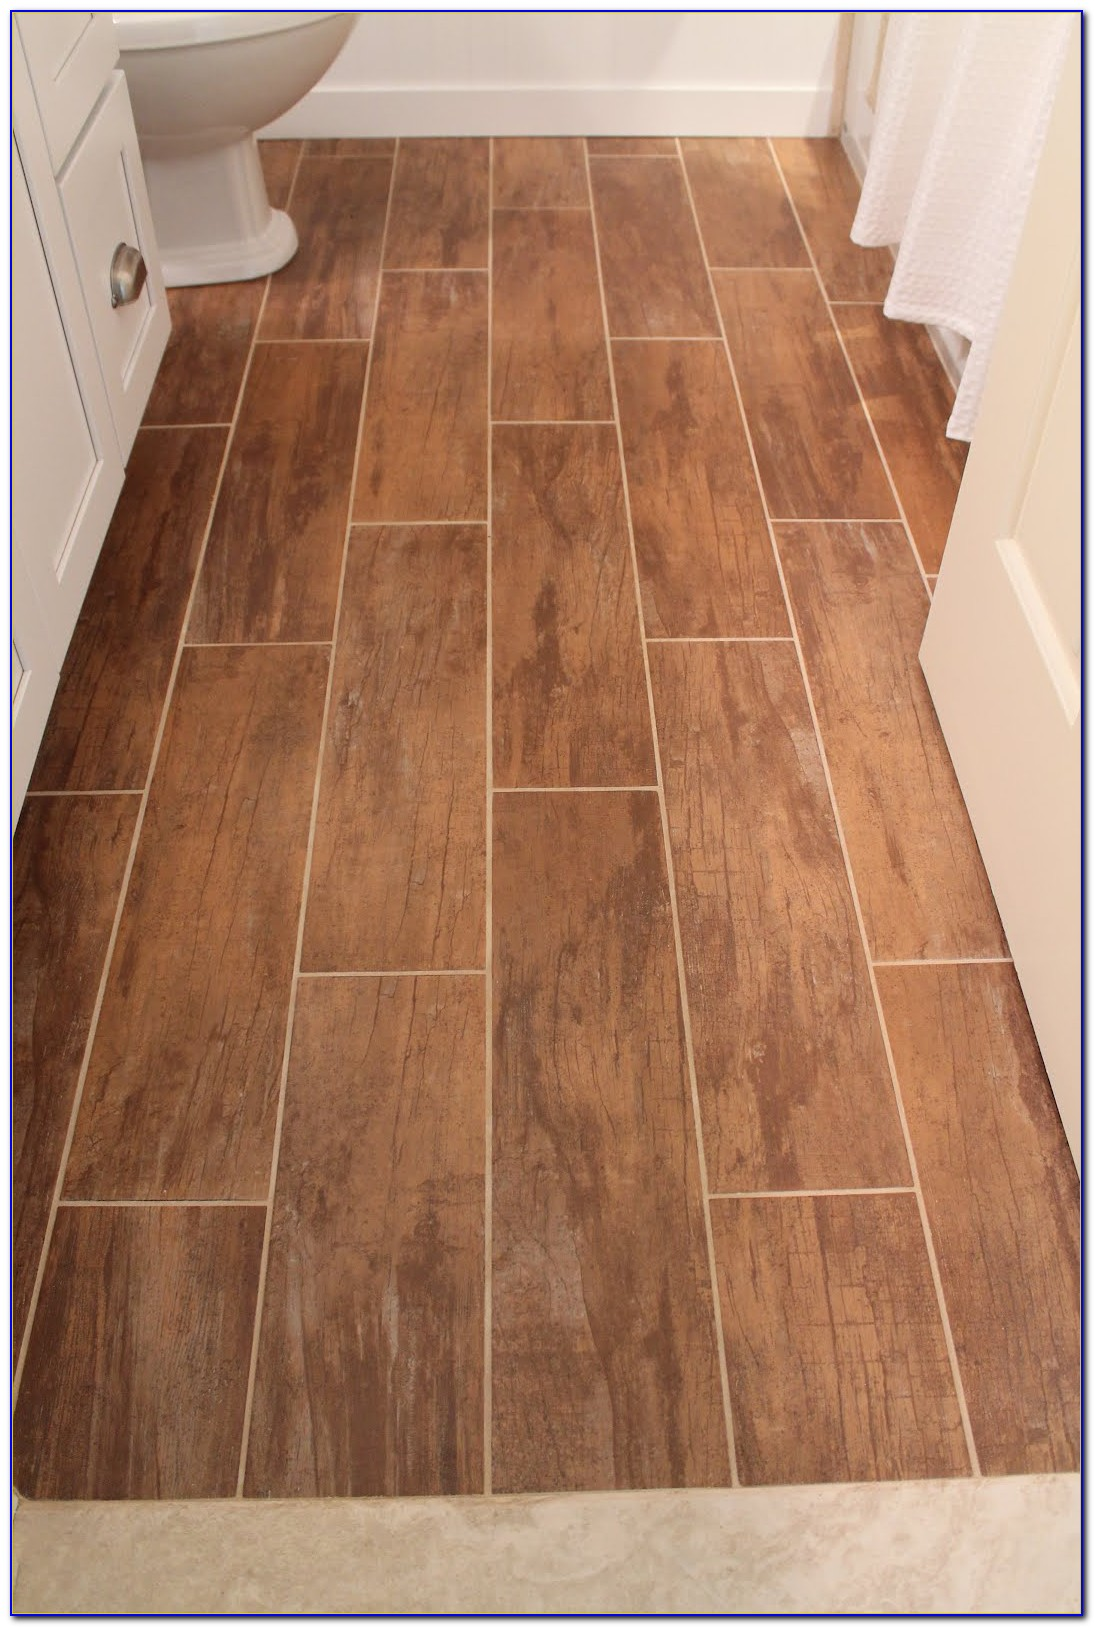 Wood Grain Ceramic Tile Canada